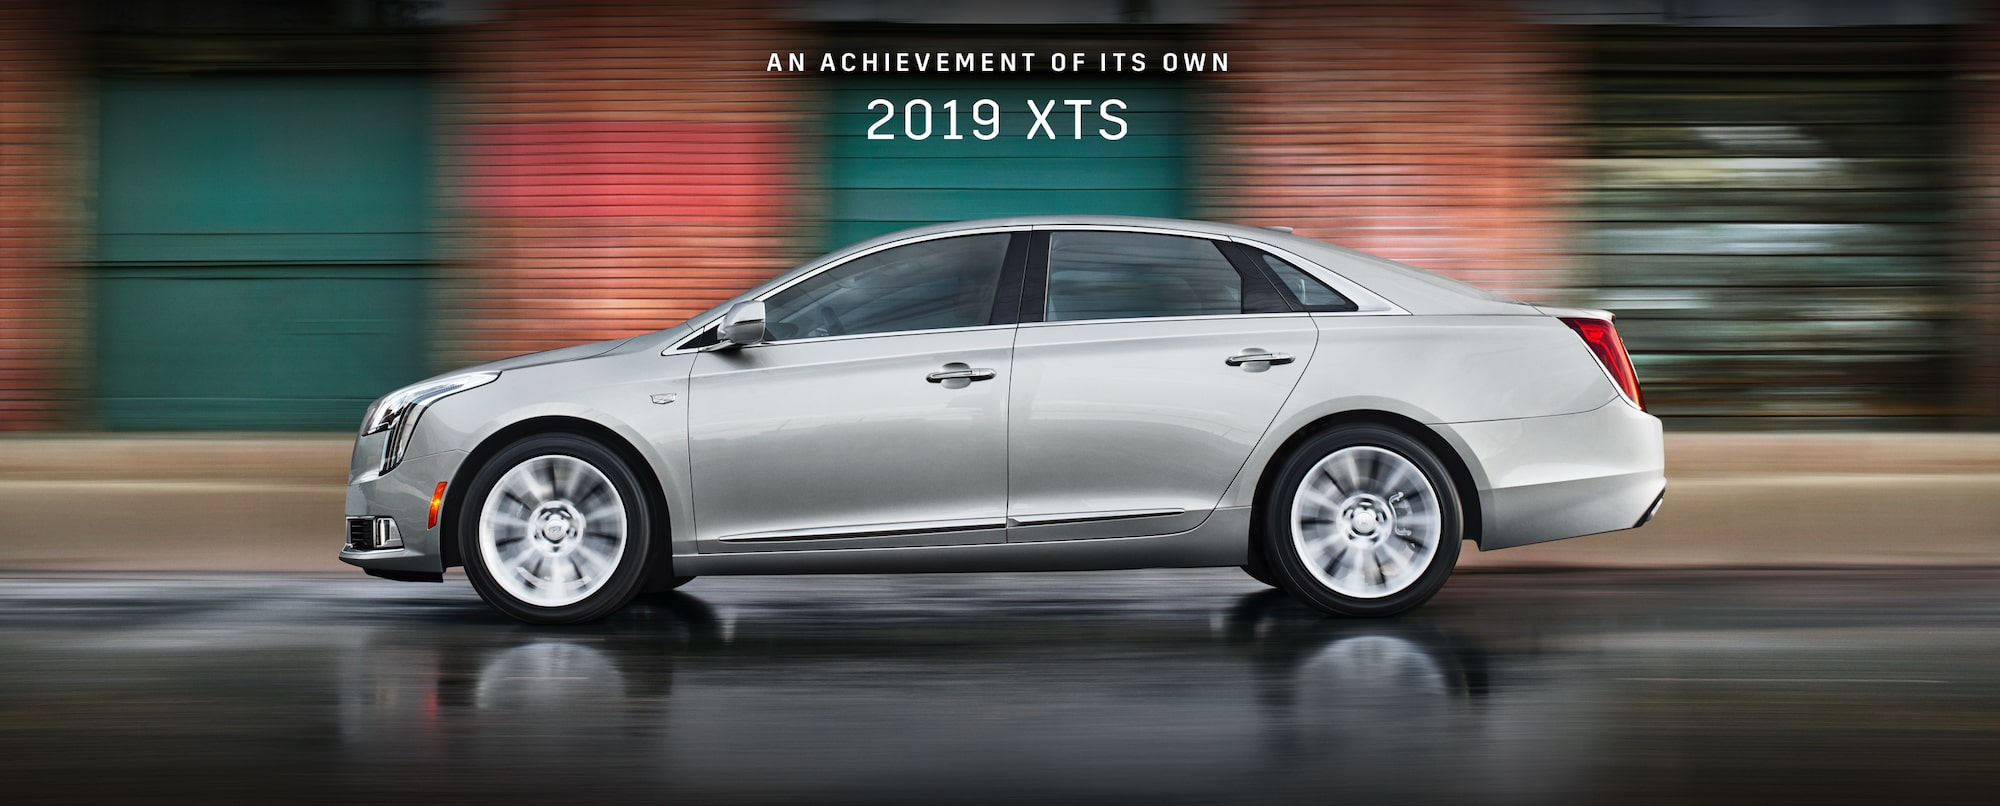 hight resolution of xts wiring diagram wiring diagrams lol 2012 cadillac xts wiring diagram wiring library diagram h9 series